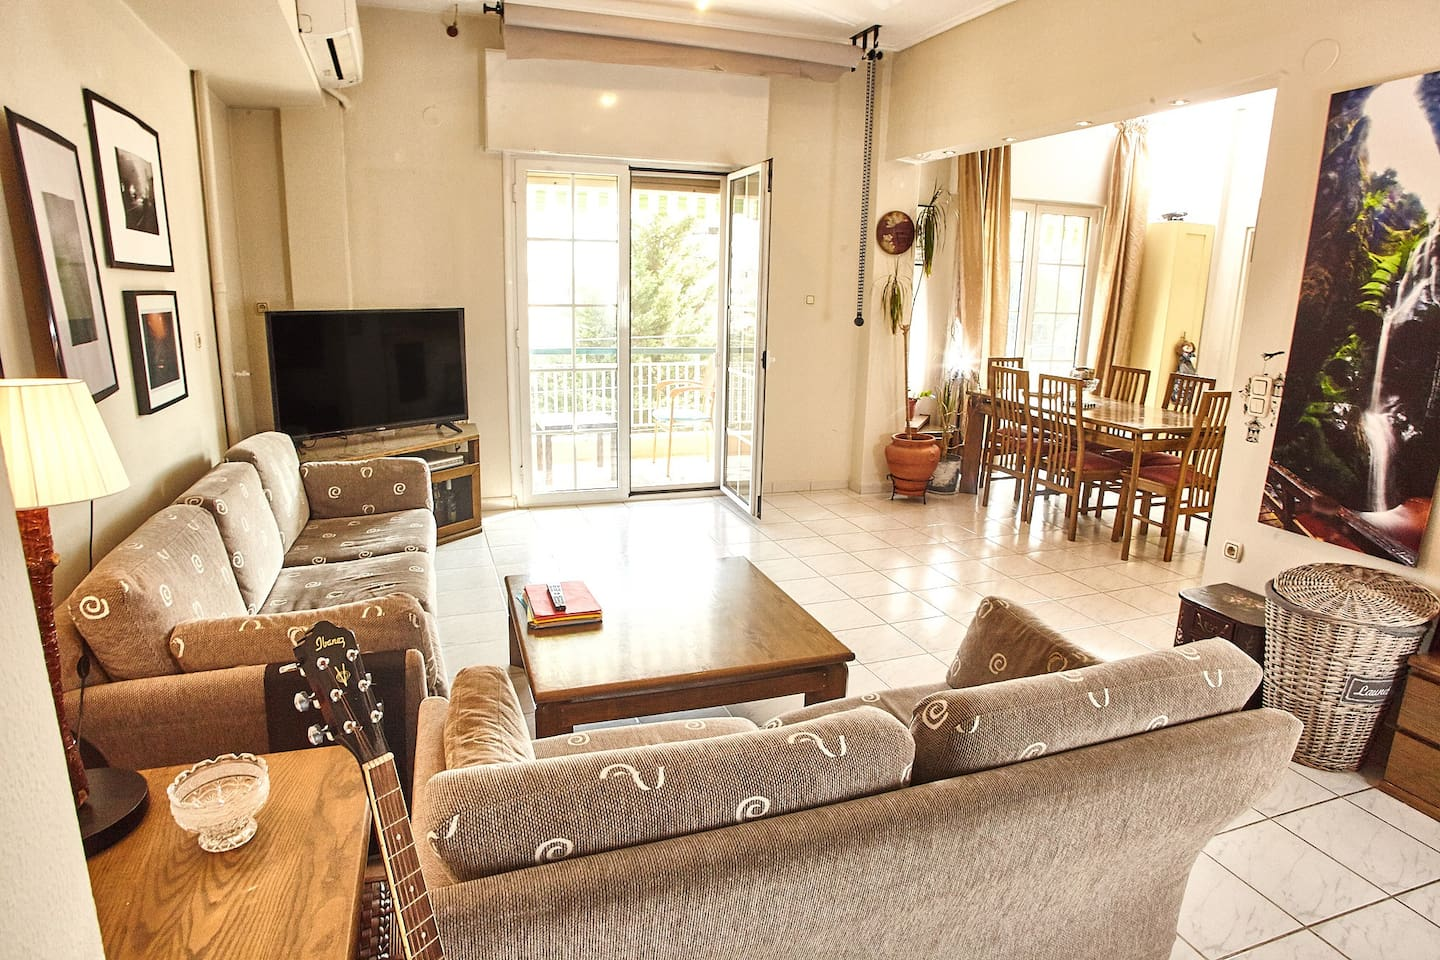 Living Room - Spacious & Well Lit | The heart of the apartment, modern living, cooking & dining space, is massive, well lit, decorated with pictures and design items. Plenty of sunlight from three window doors seeing trees and the park in front.